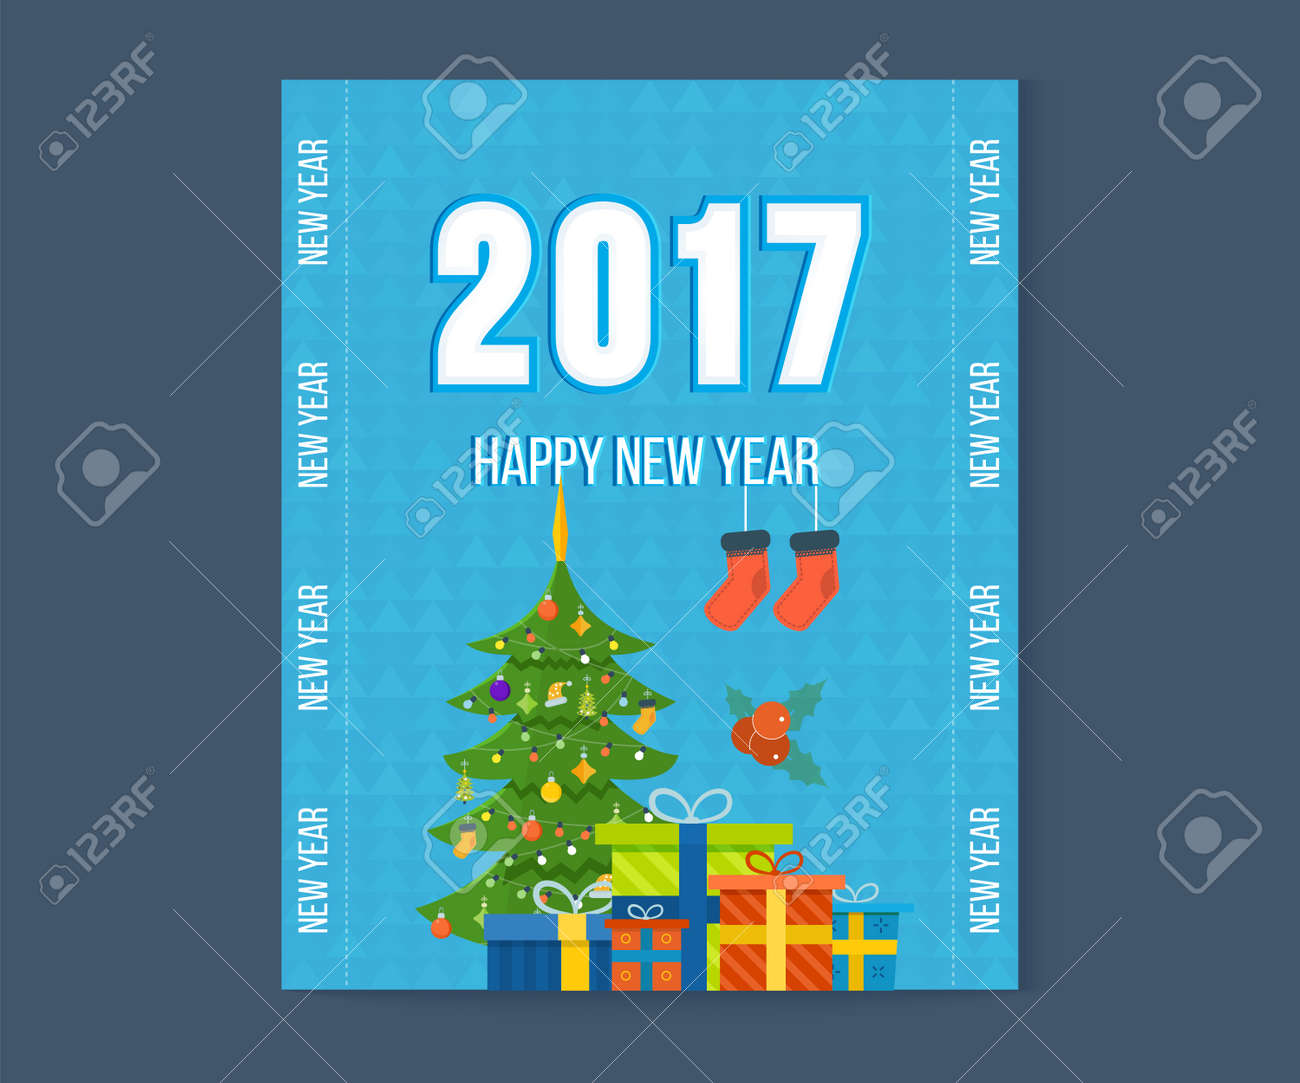 Christmas Wishing Card With Traditional Celebrating Text Merry